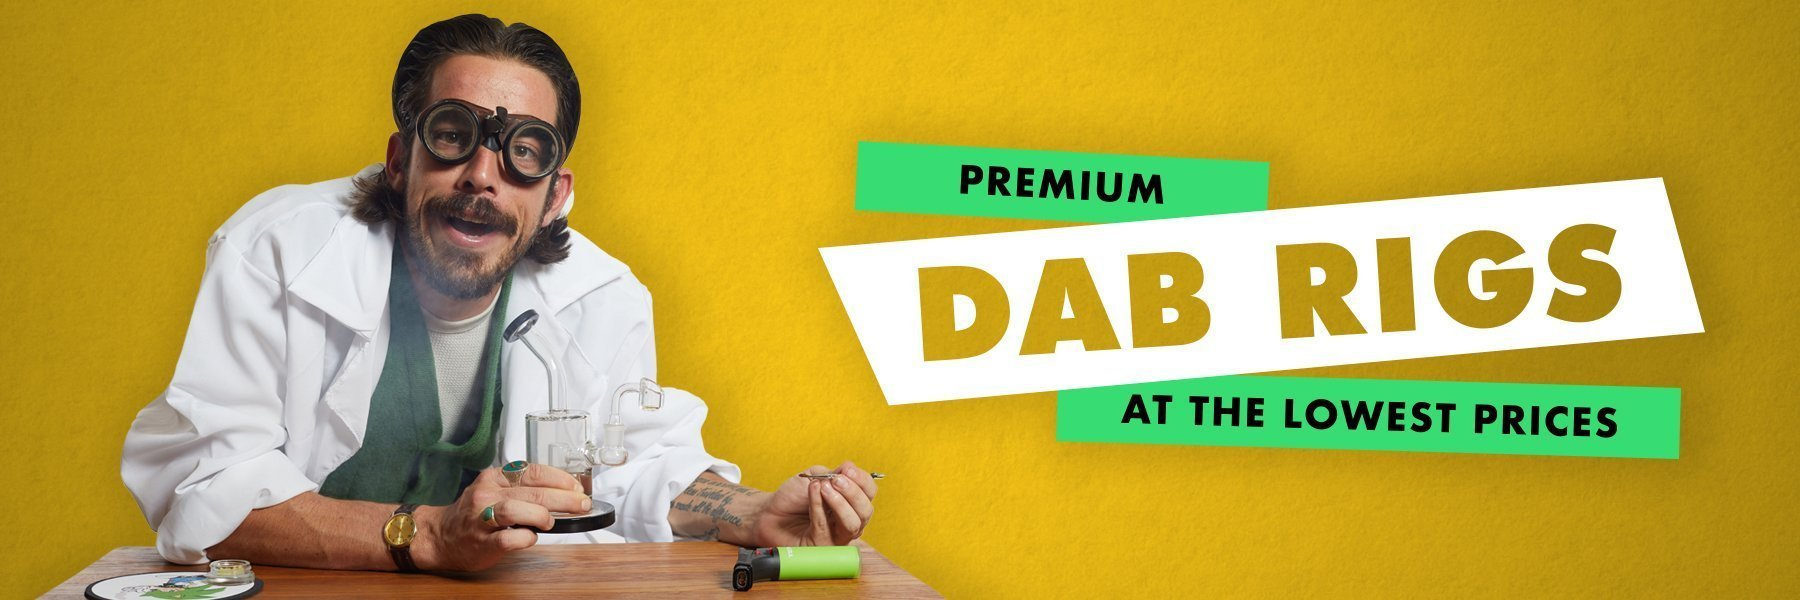 Dabbing Accessories - Dab Tools, Quartz Bangers, Torches, Carb Caps and more